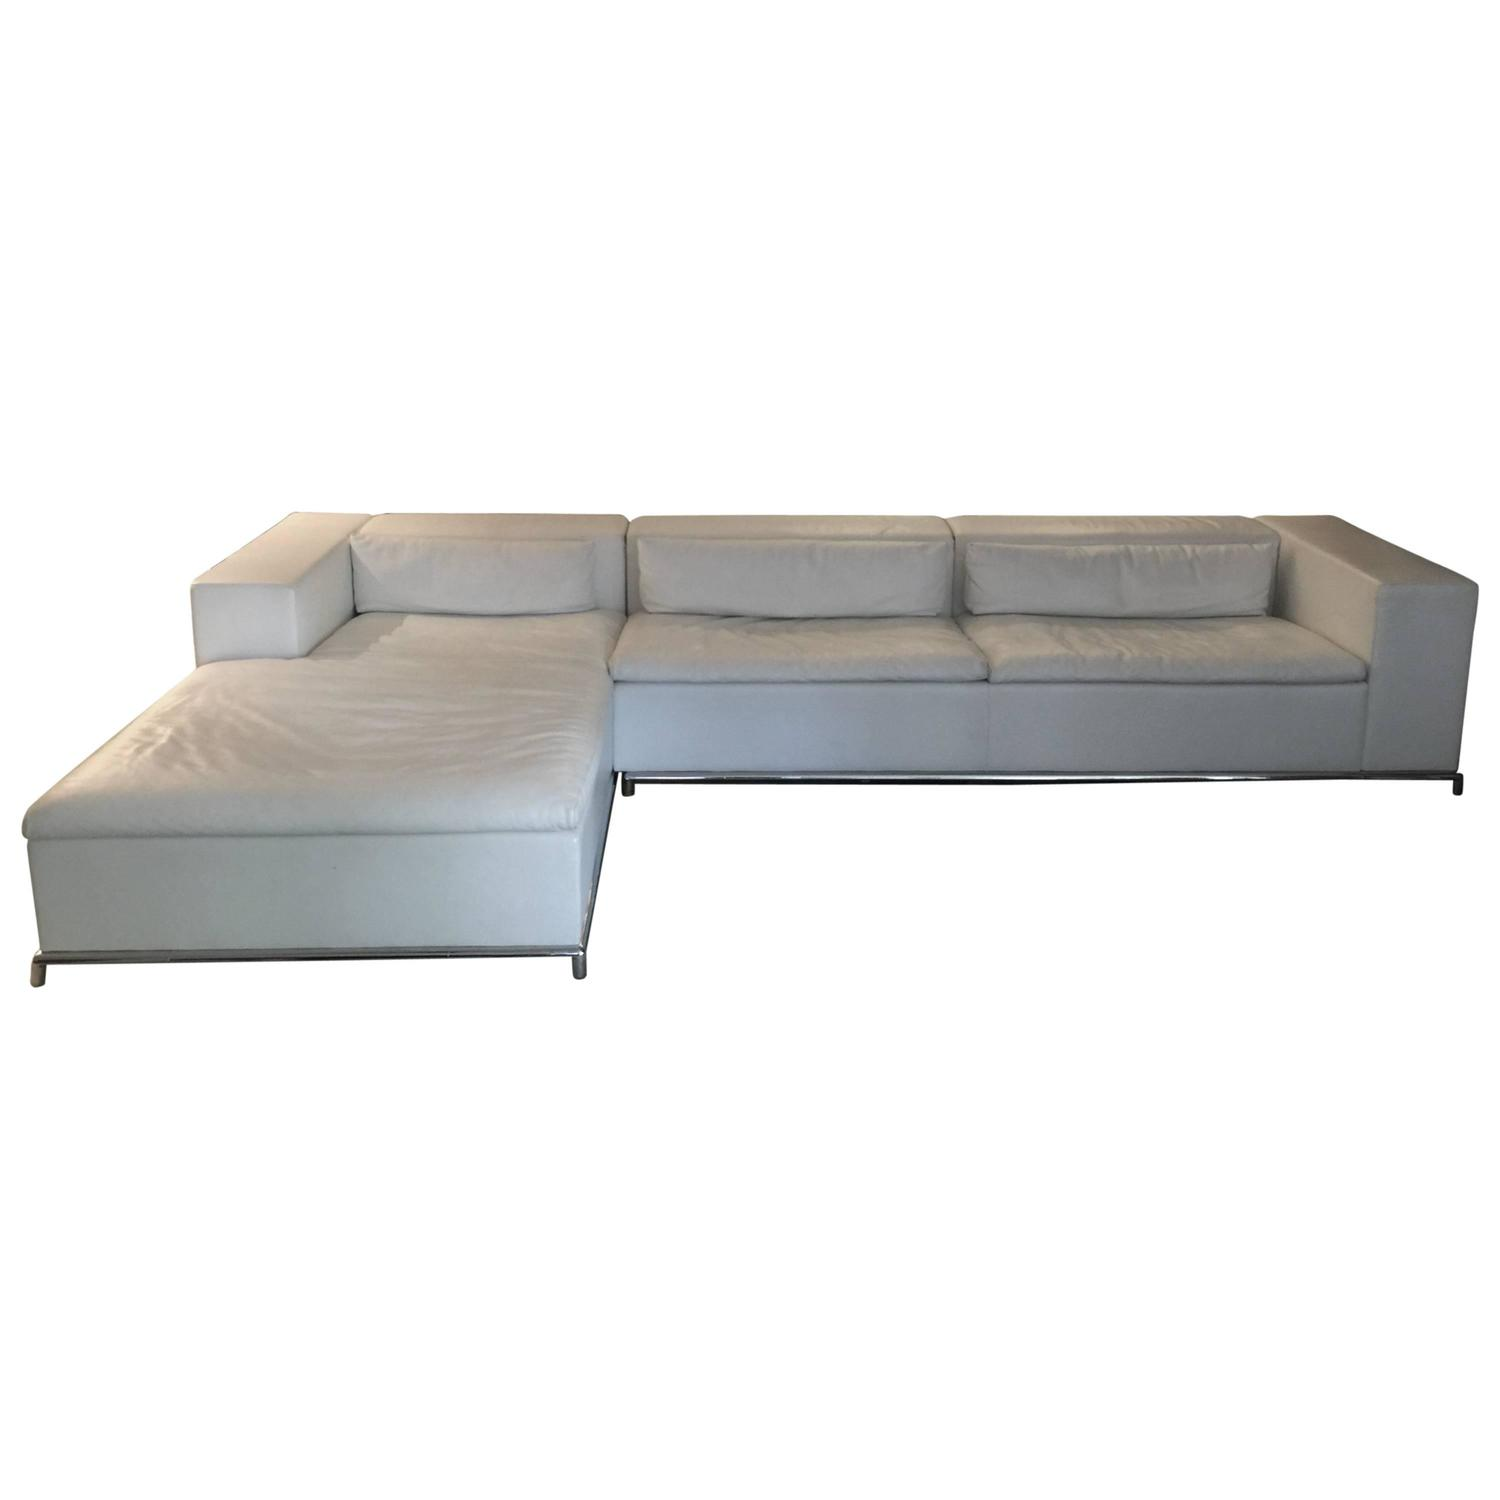 DS 7 for De Sede Modular White Leather Sectional by Antonella